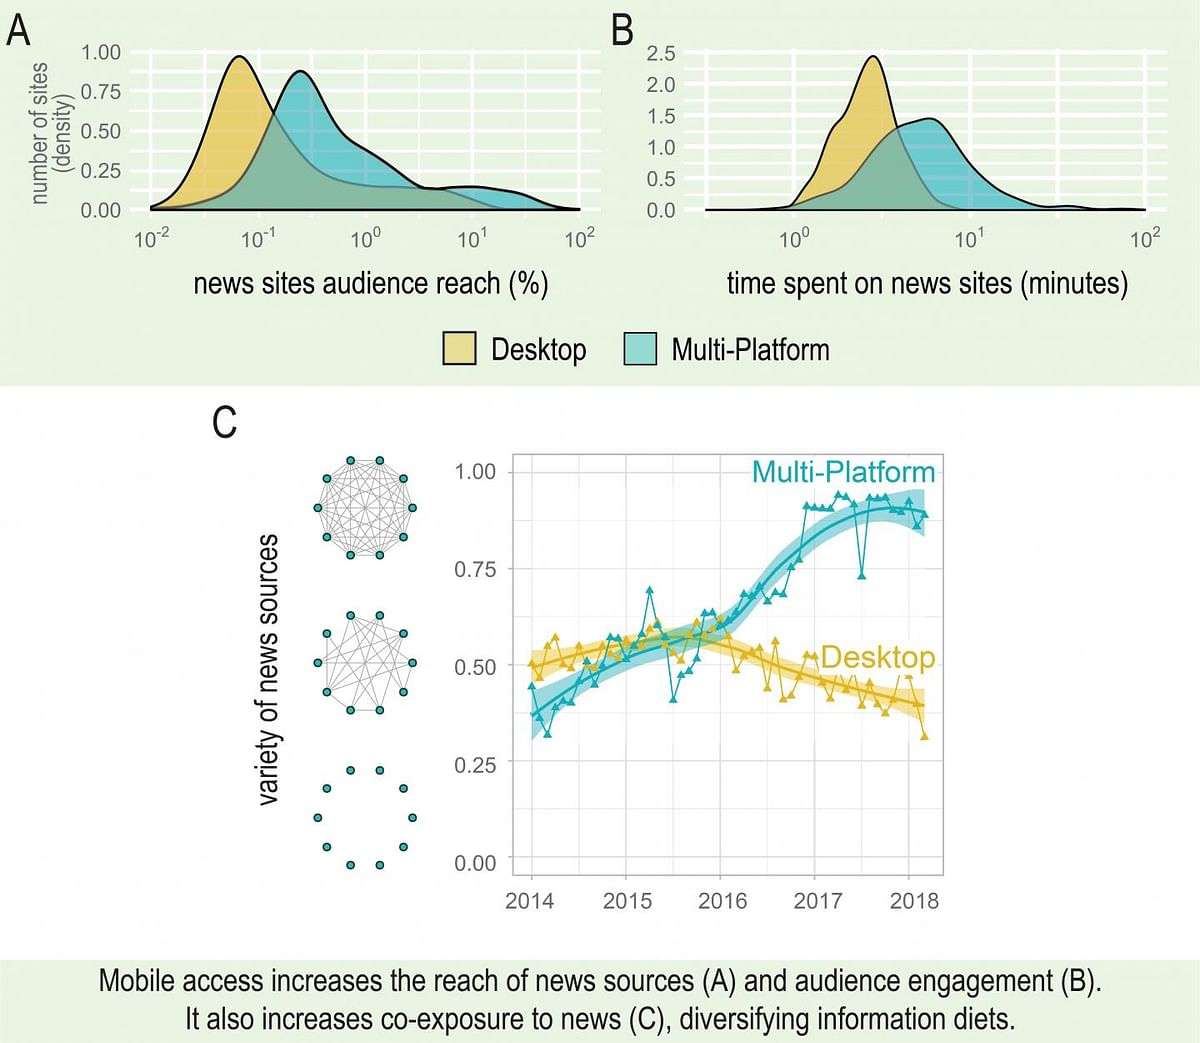 Mobile access increases the reach of news sources and audience engagement. It also increases co-exposure to news, diversifying information diets.